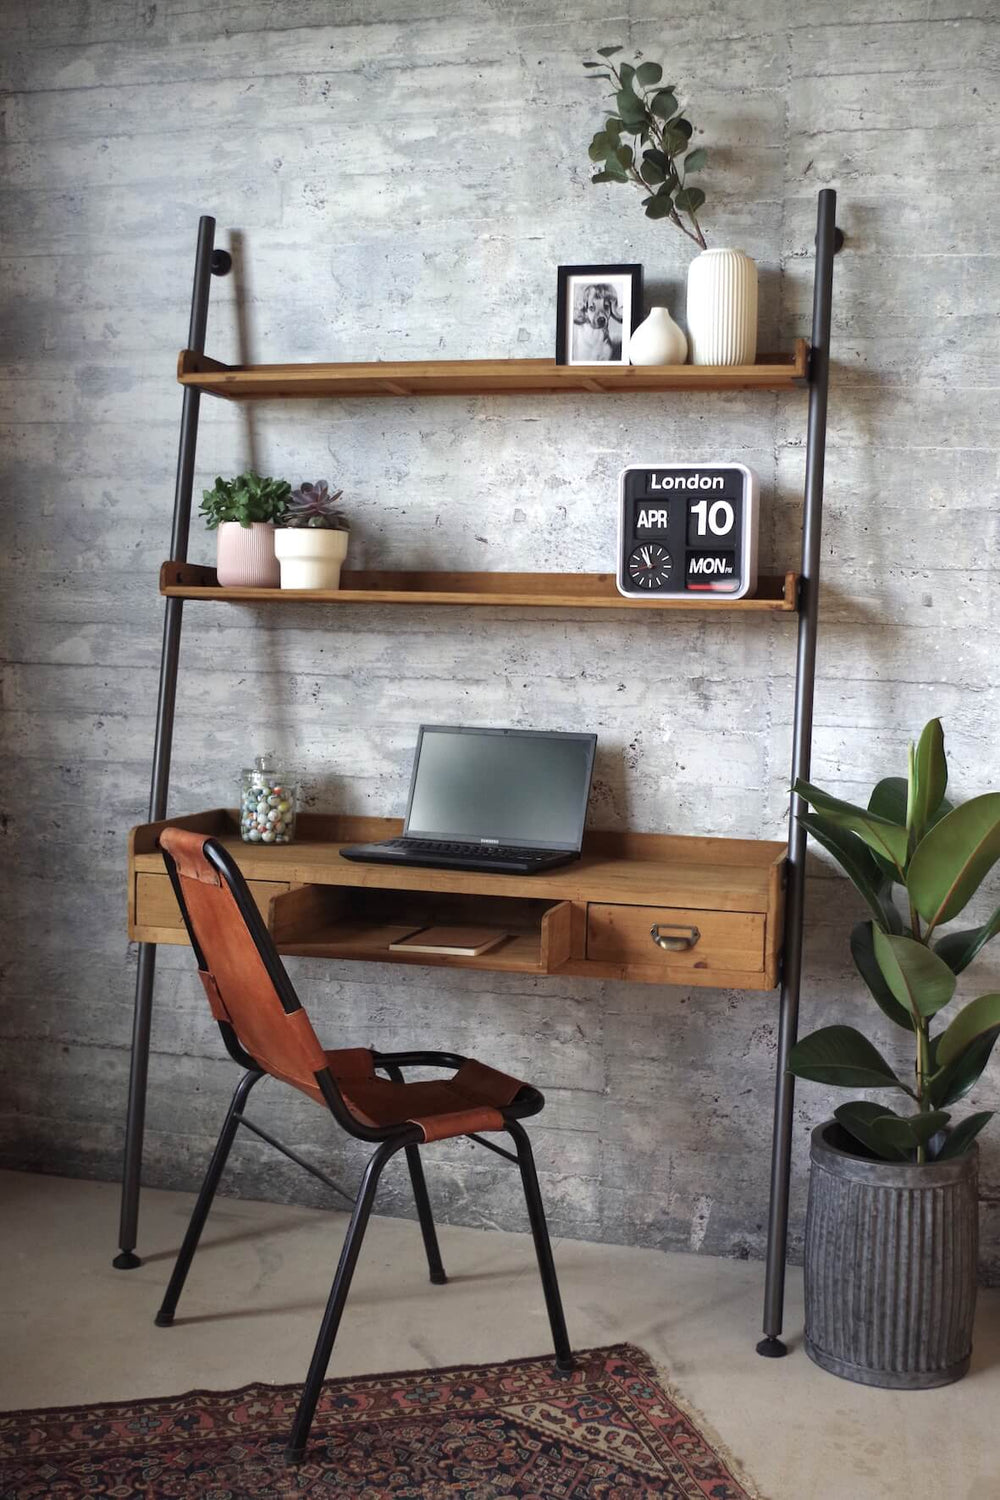 Rustic Style Ladder Desk With Shelves And Drawers Vincent And Barn